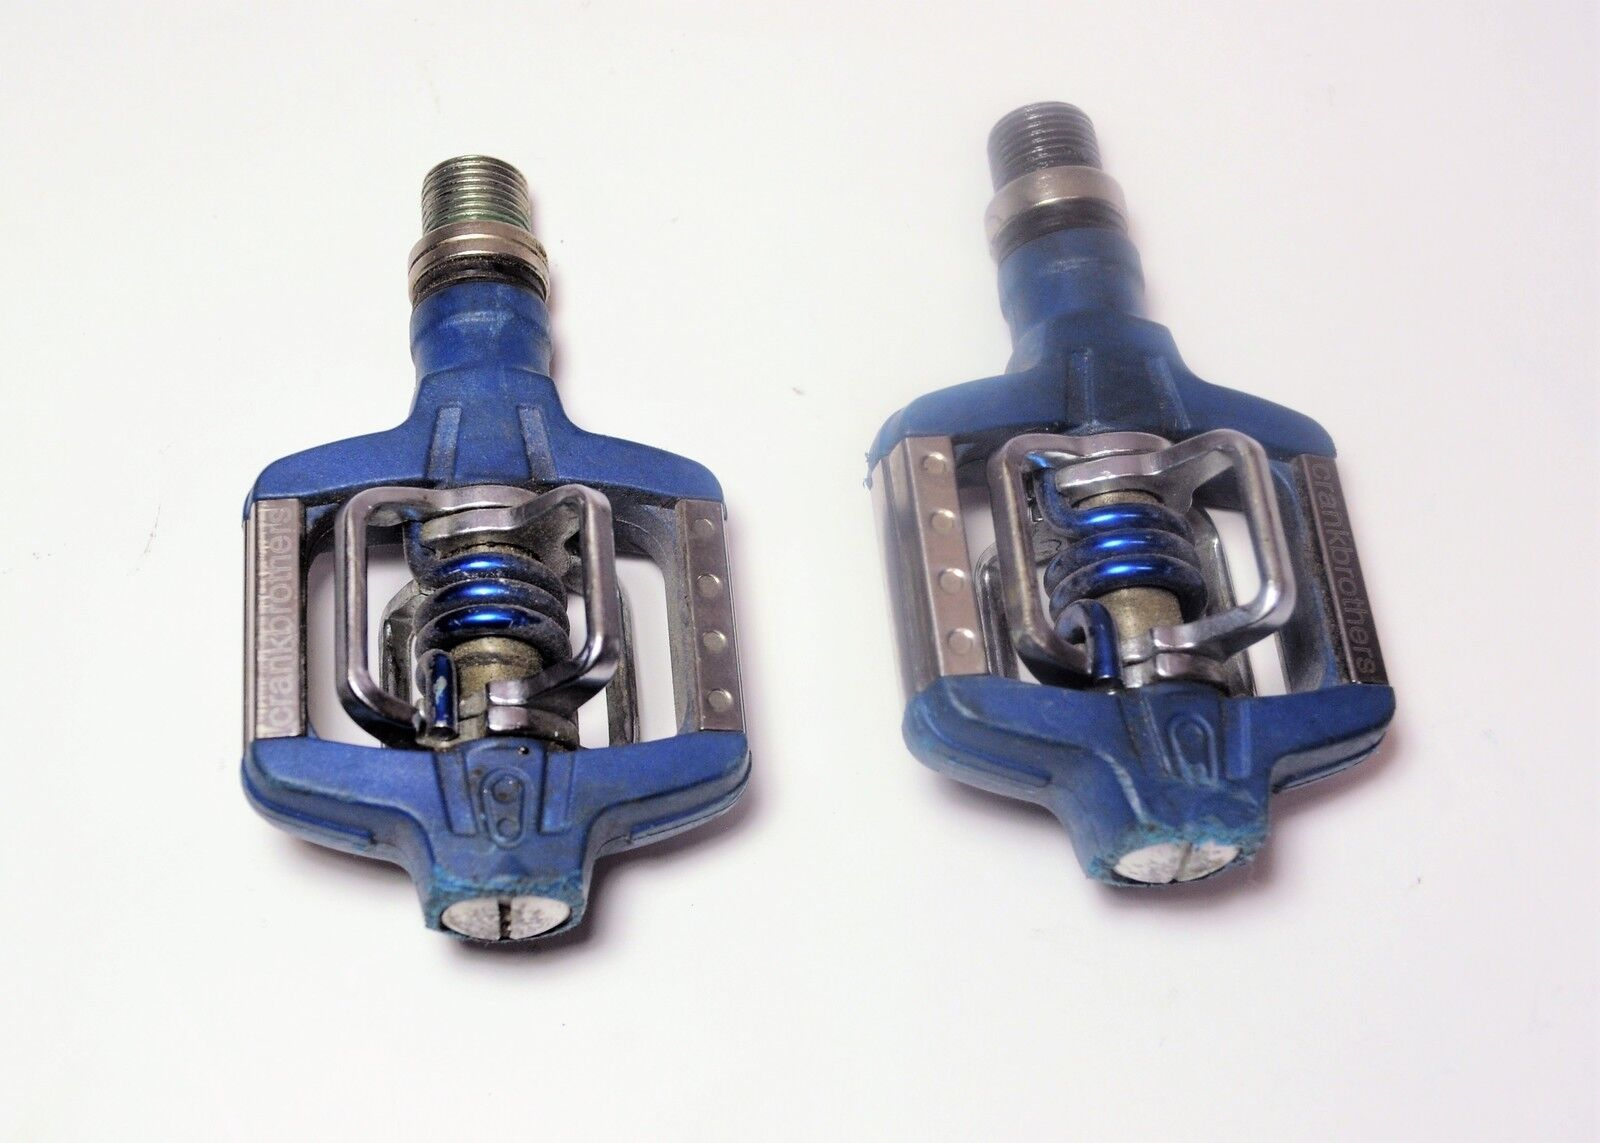 CRANK BrossoHERS blu CANDY C ROAD MTN BICYCLE DUAL CLIPLESS PEDALS 916 X 20 TPI